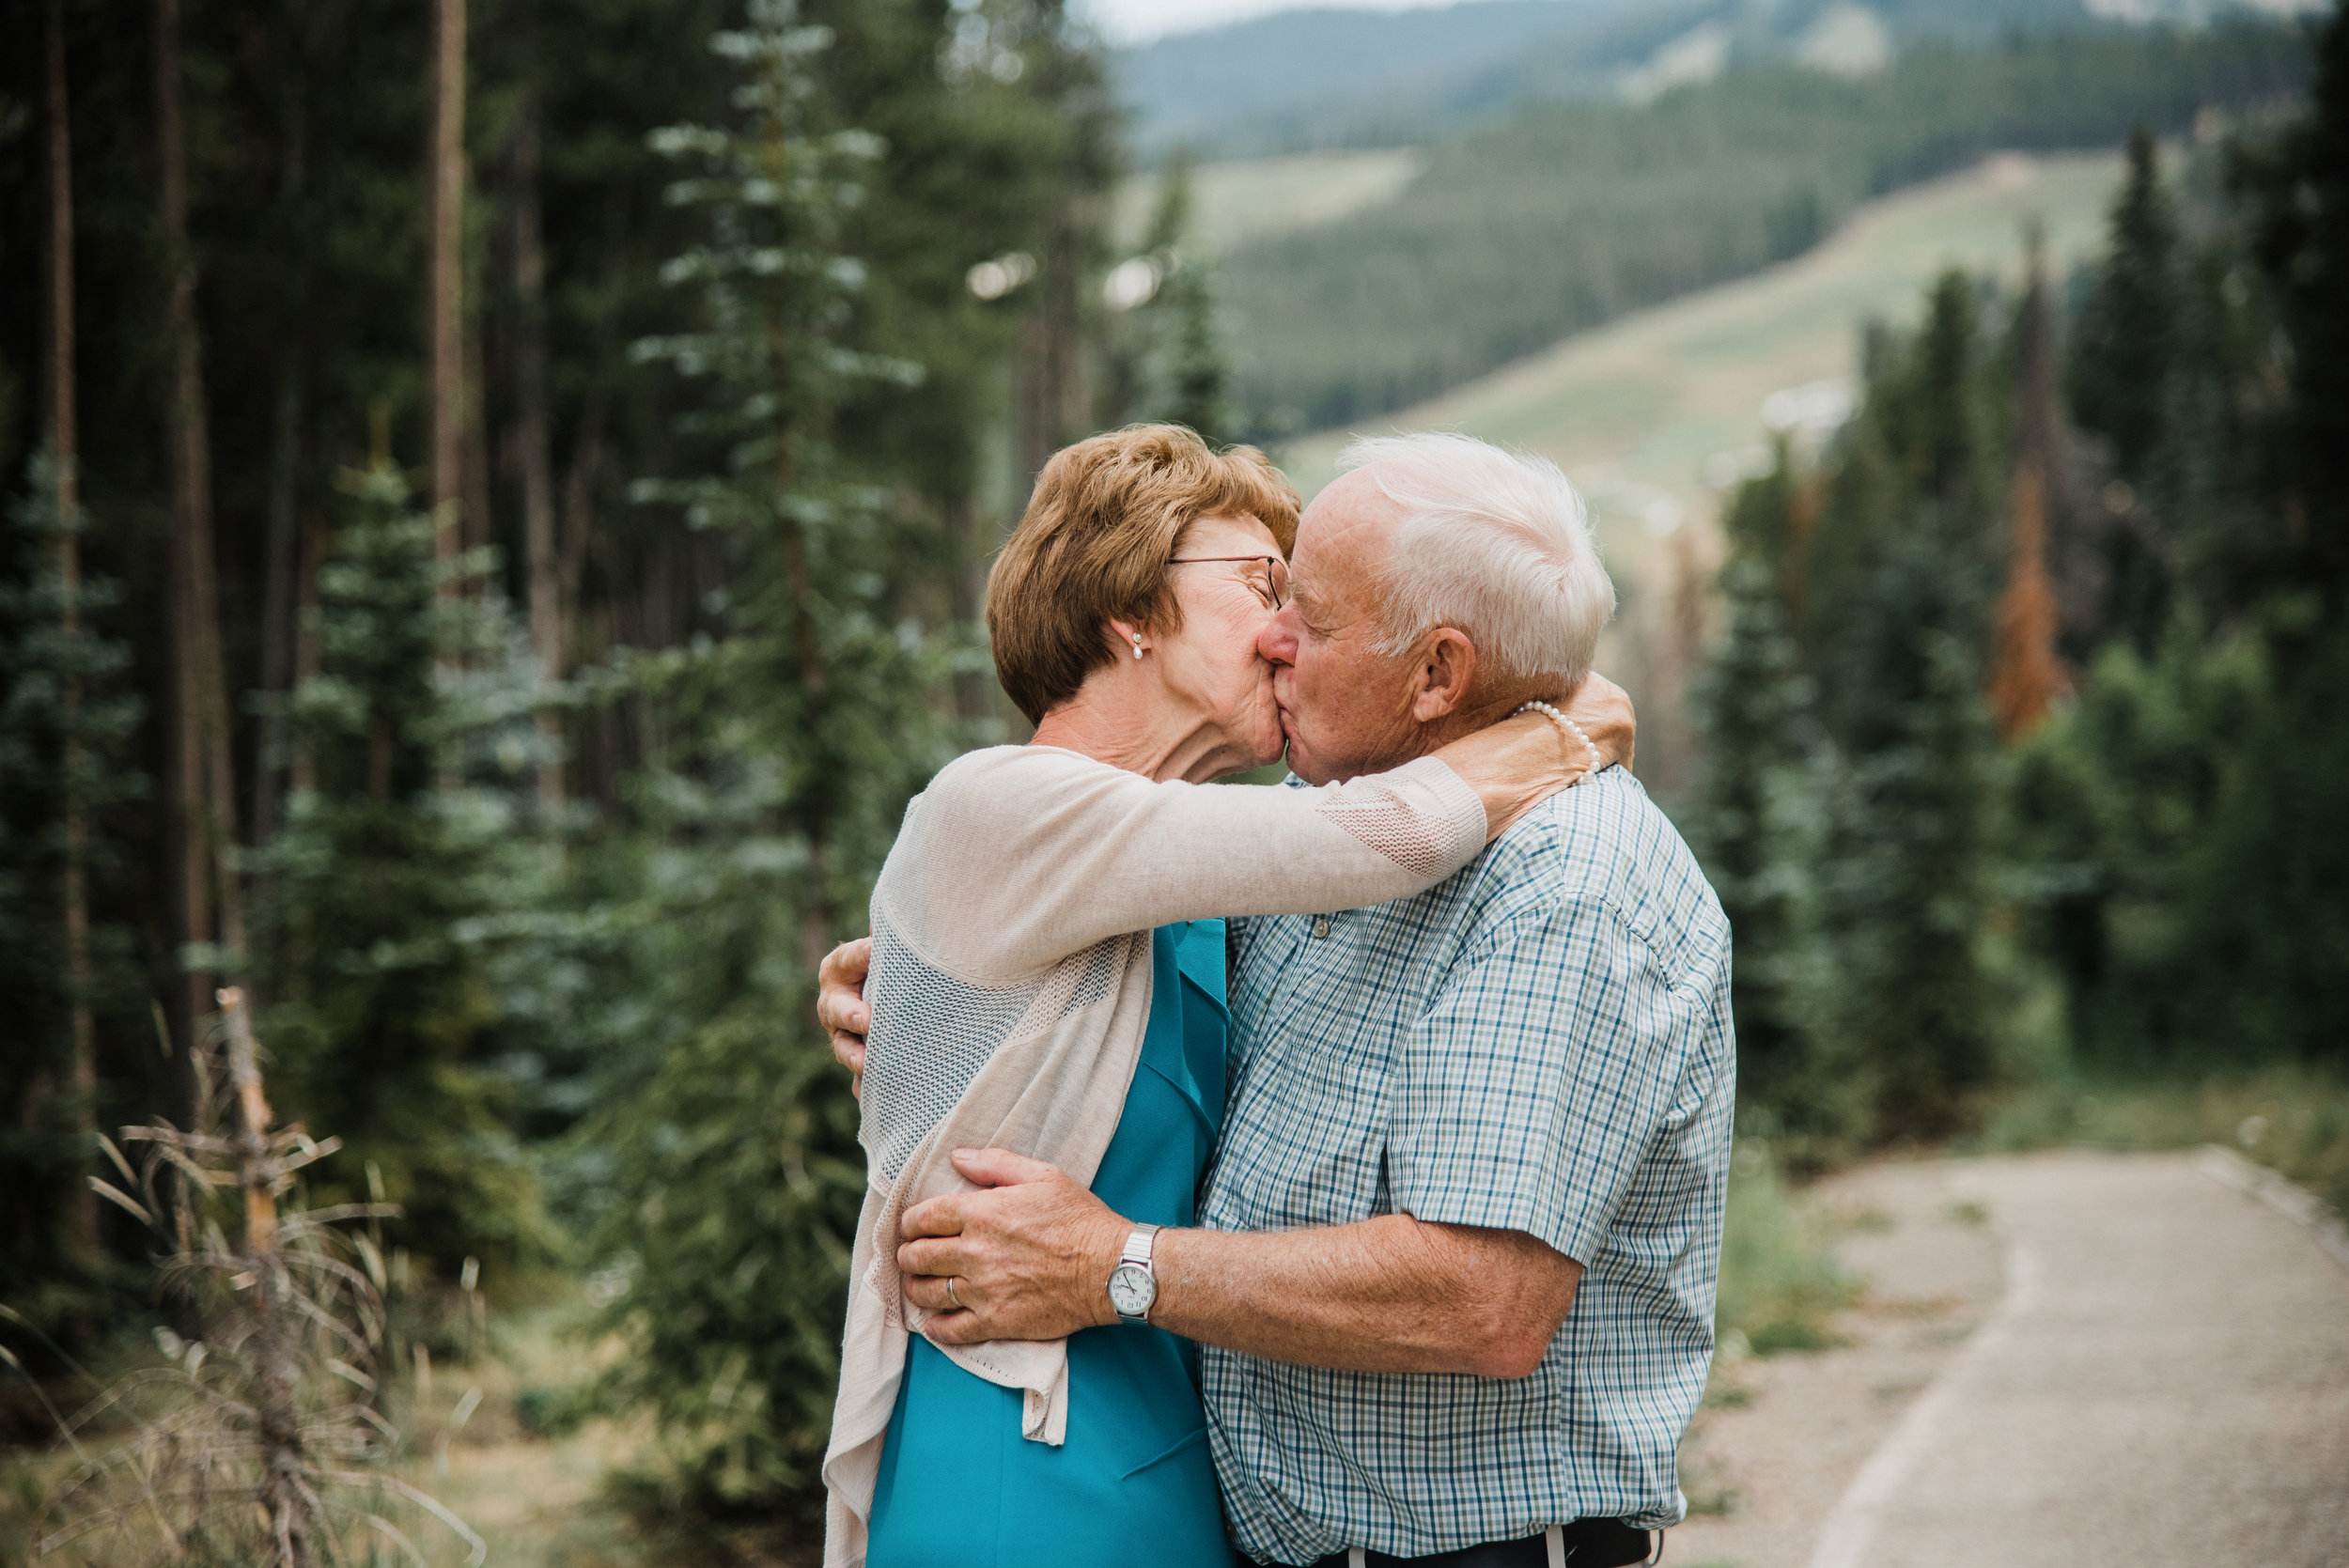 Grandparents_Session_Family_Breckenridge_Apollo_Photo_42.jpg